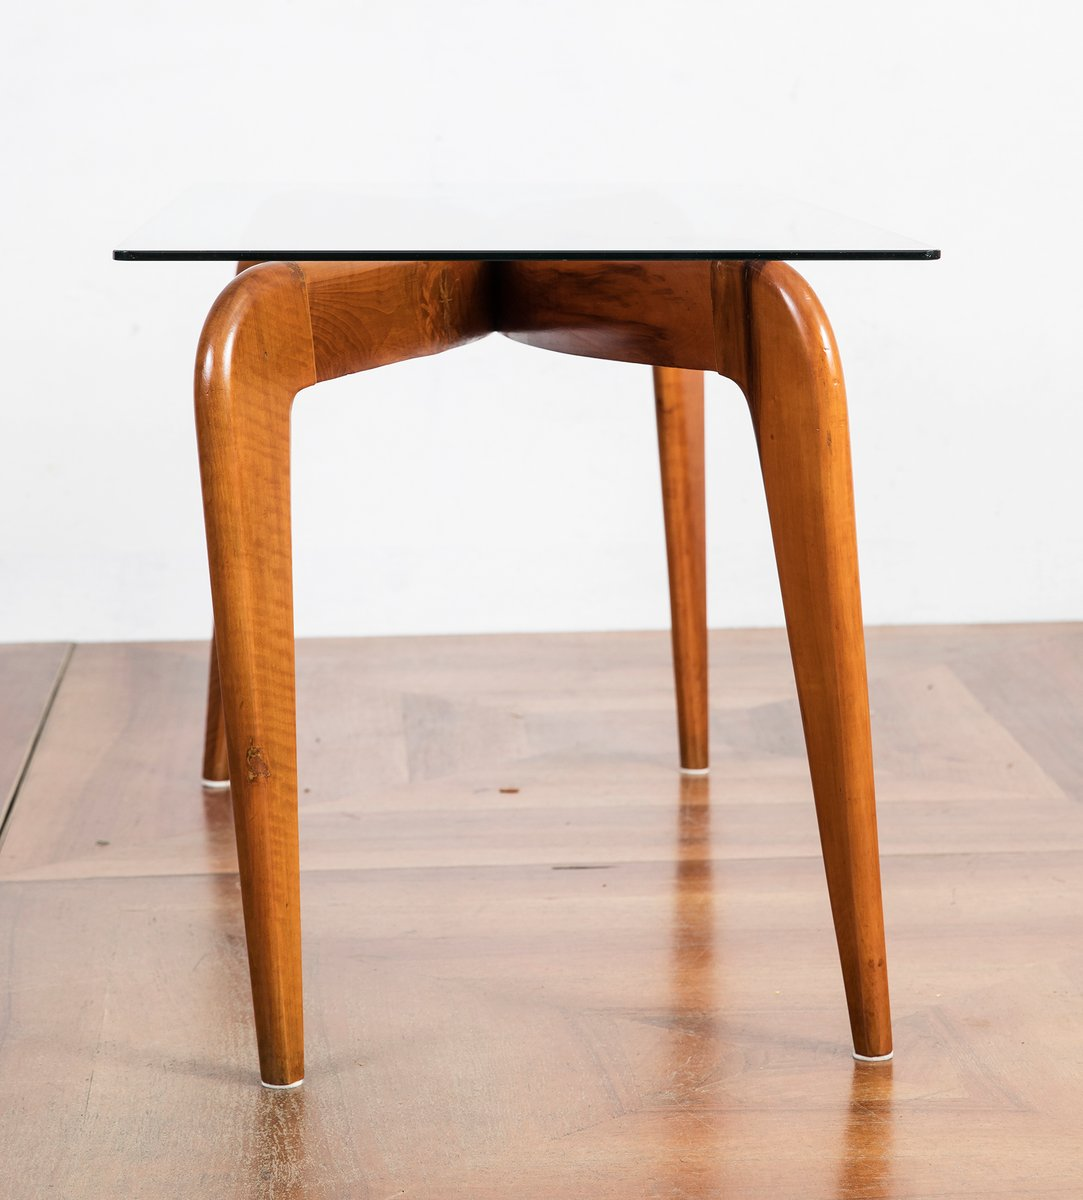 For Sale Cherry Wood Coffee Table: Cherry Wood Coffee Table By Giò Ponti For Fontana Arte